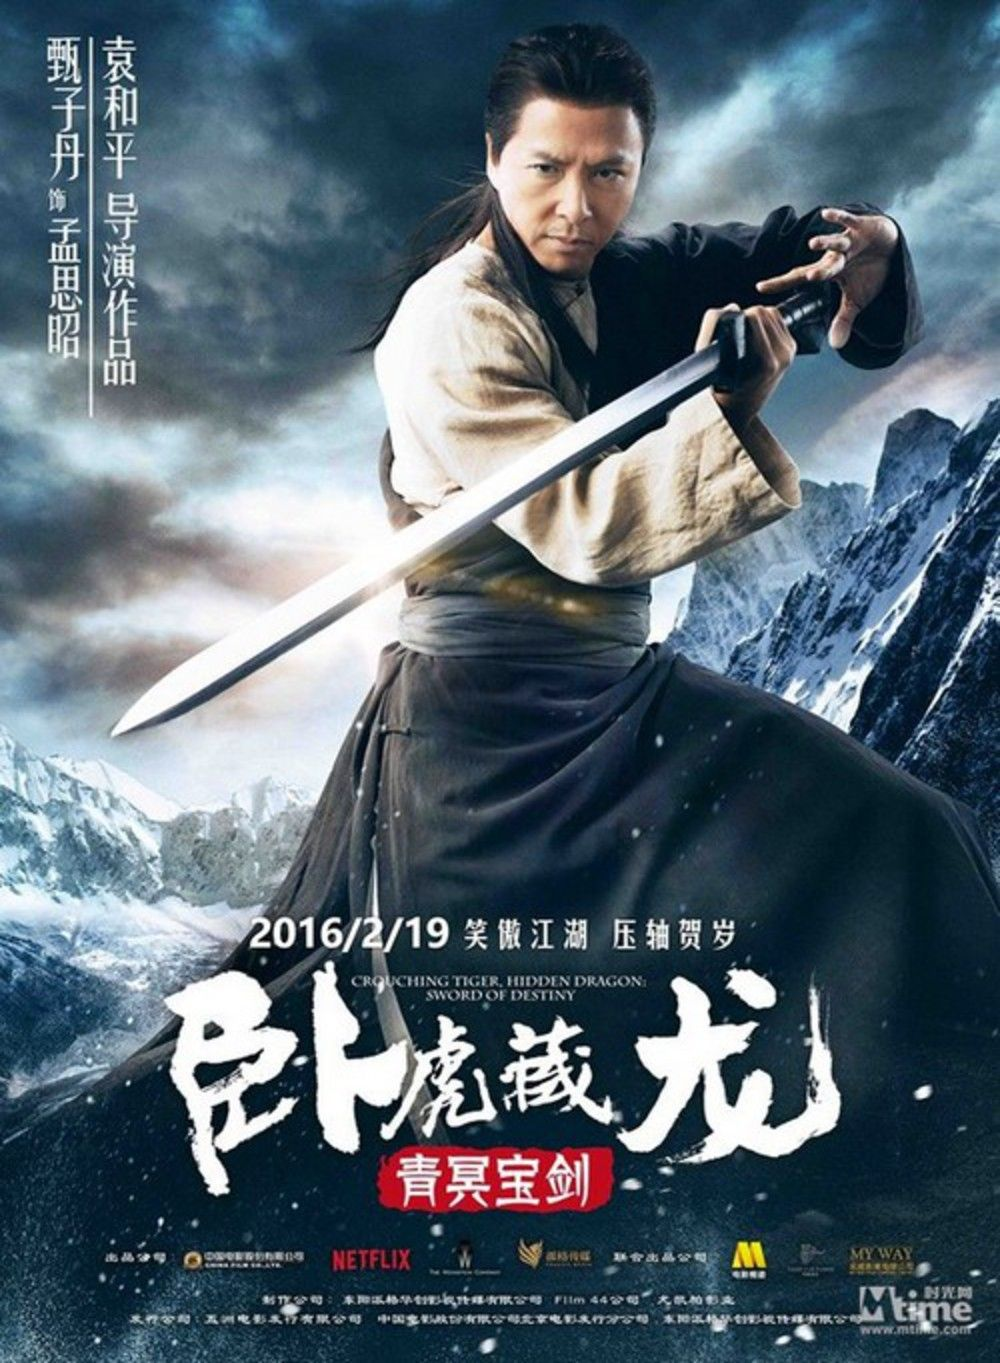 tigre et dragon 2 streaming films streaming french dragon kung fu movies et donnie yen movie. Black Bedroom Furniture Sets. Home Design Ideas